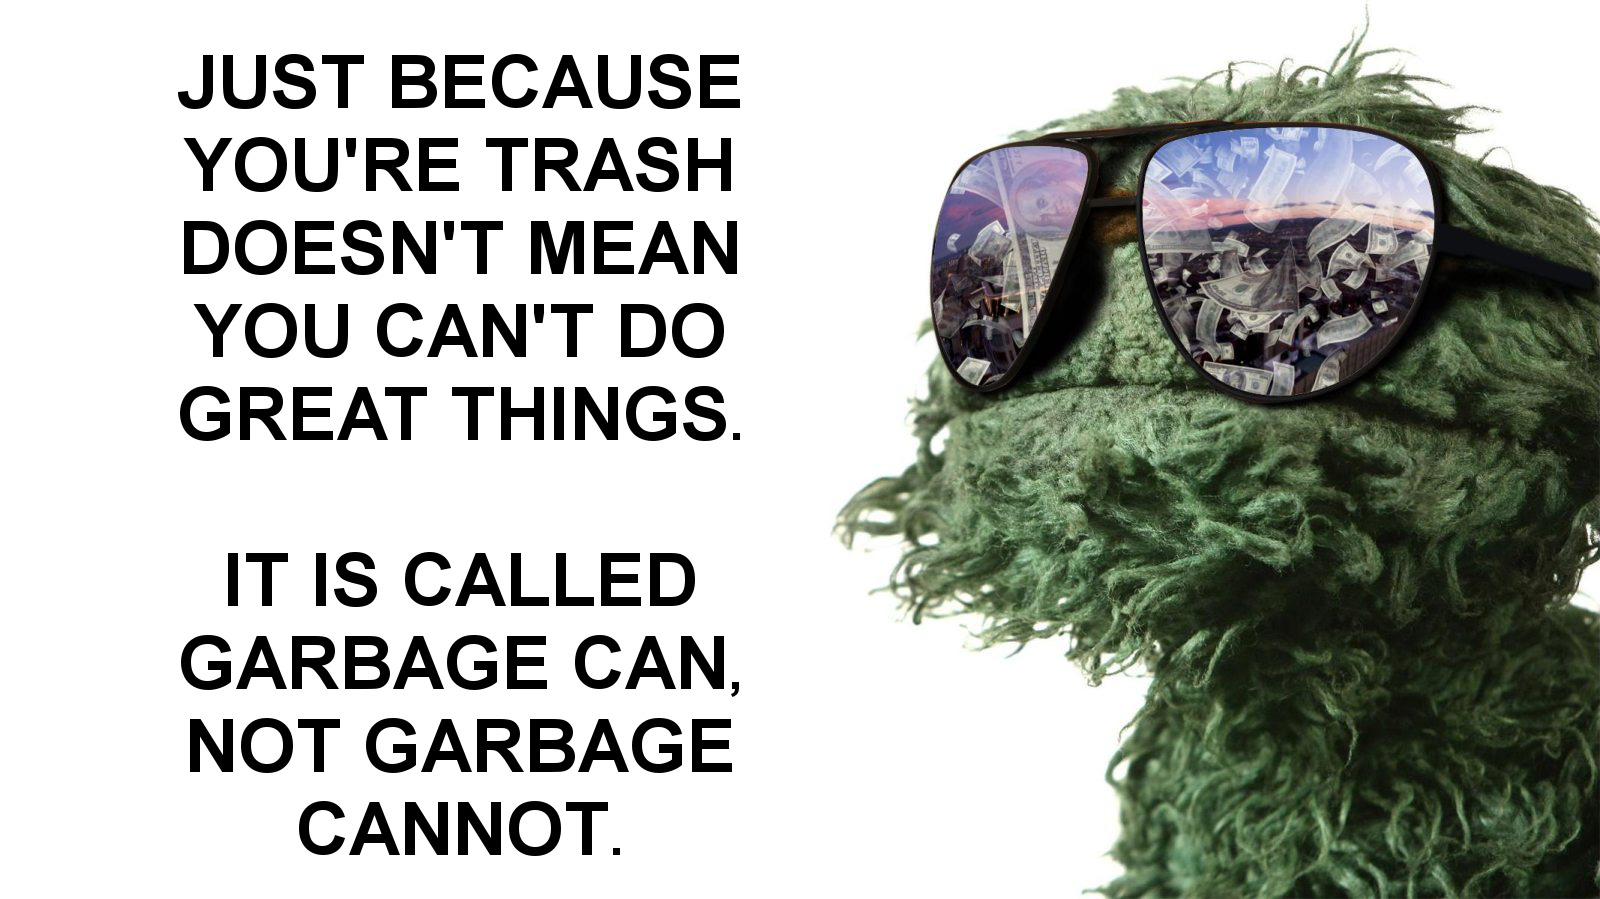 JUST BECAUSE YOU'RE TRASH DOESN'T MEAN YOU CAN'T DO GREAT THINGS. IT IS CALLED GARBAGE CAN, NOT GARBAGE CANNOT. https://inspirational.ly